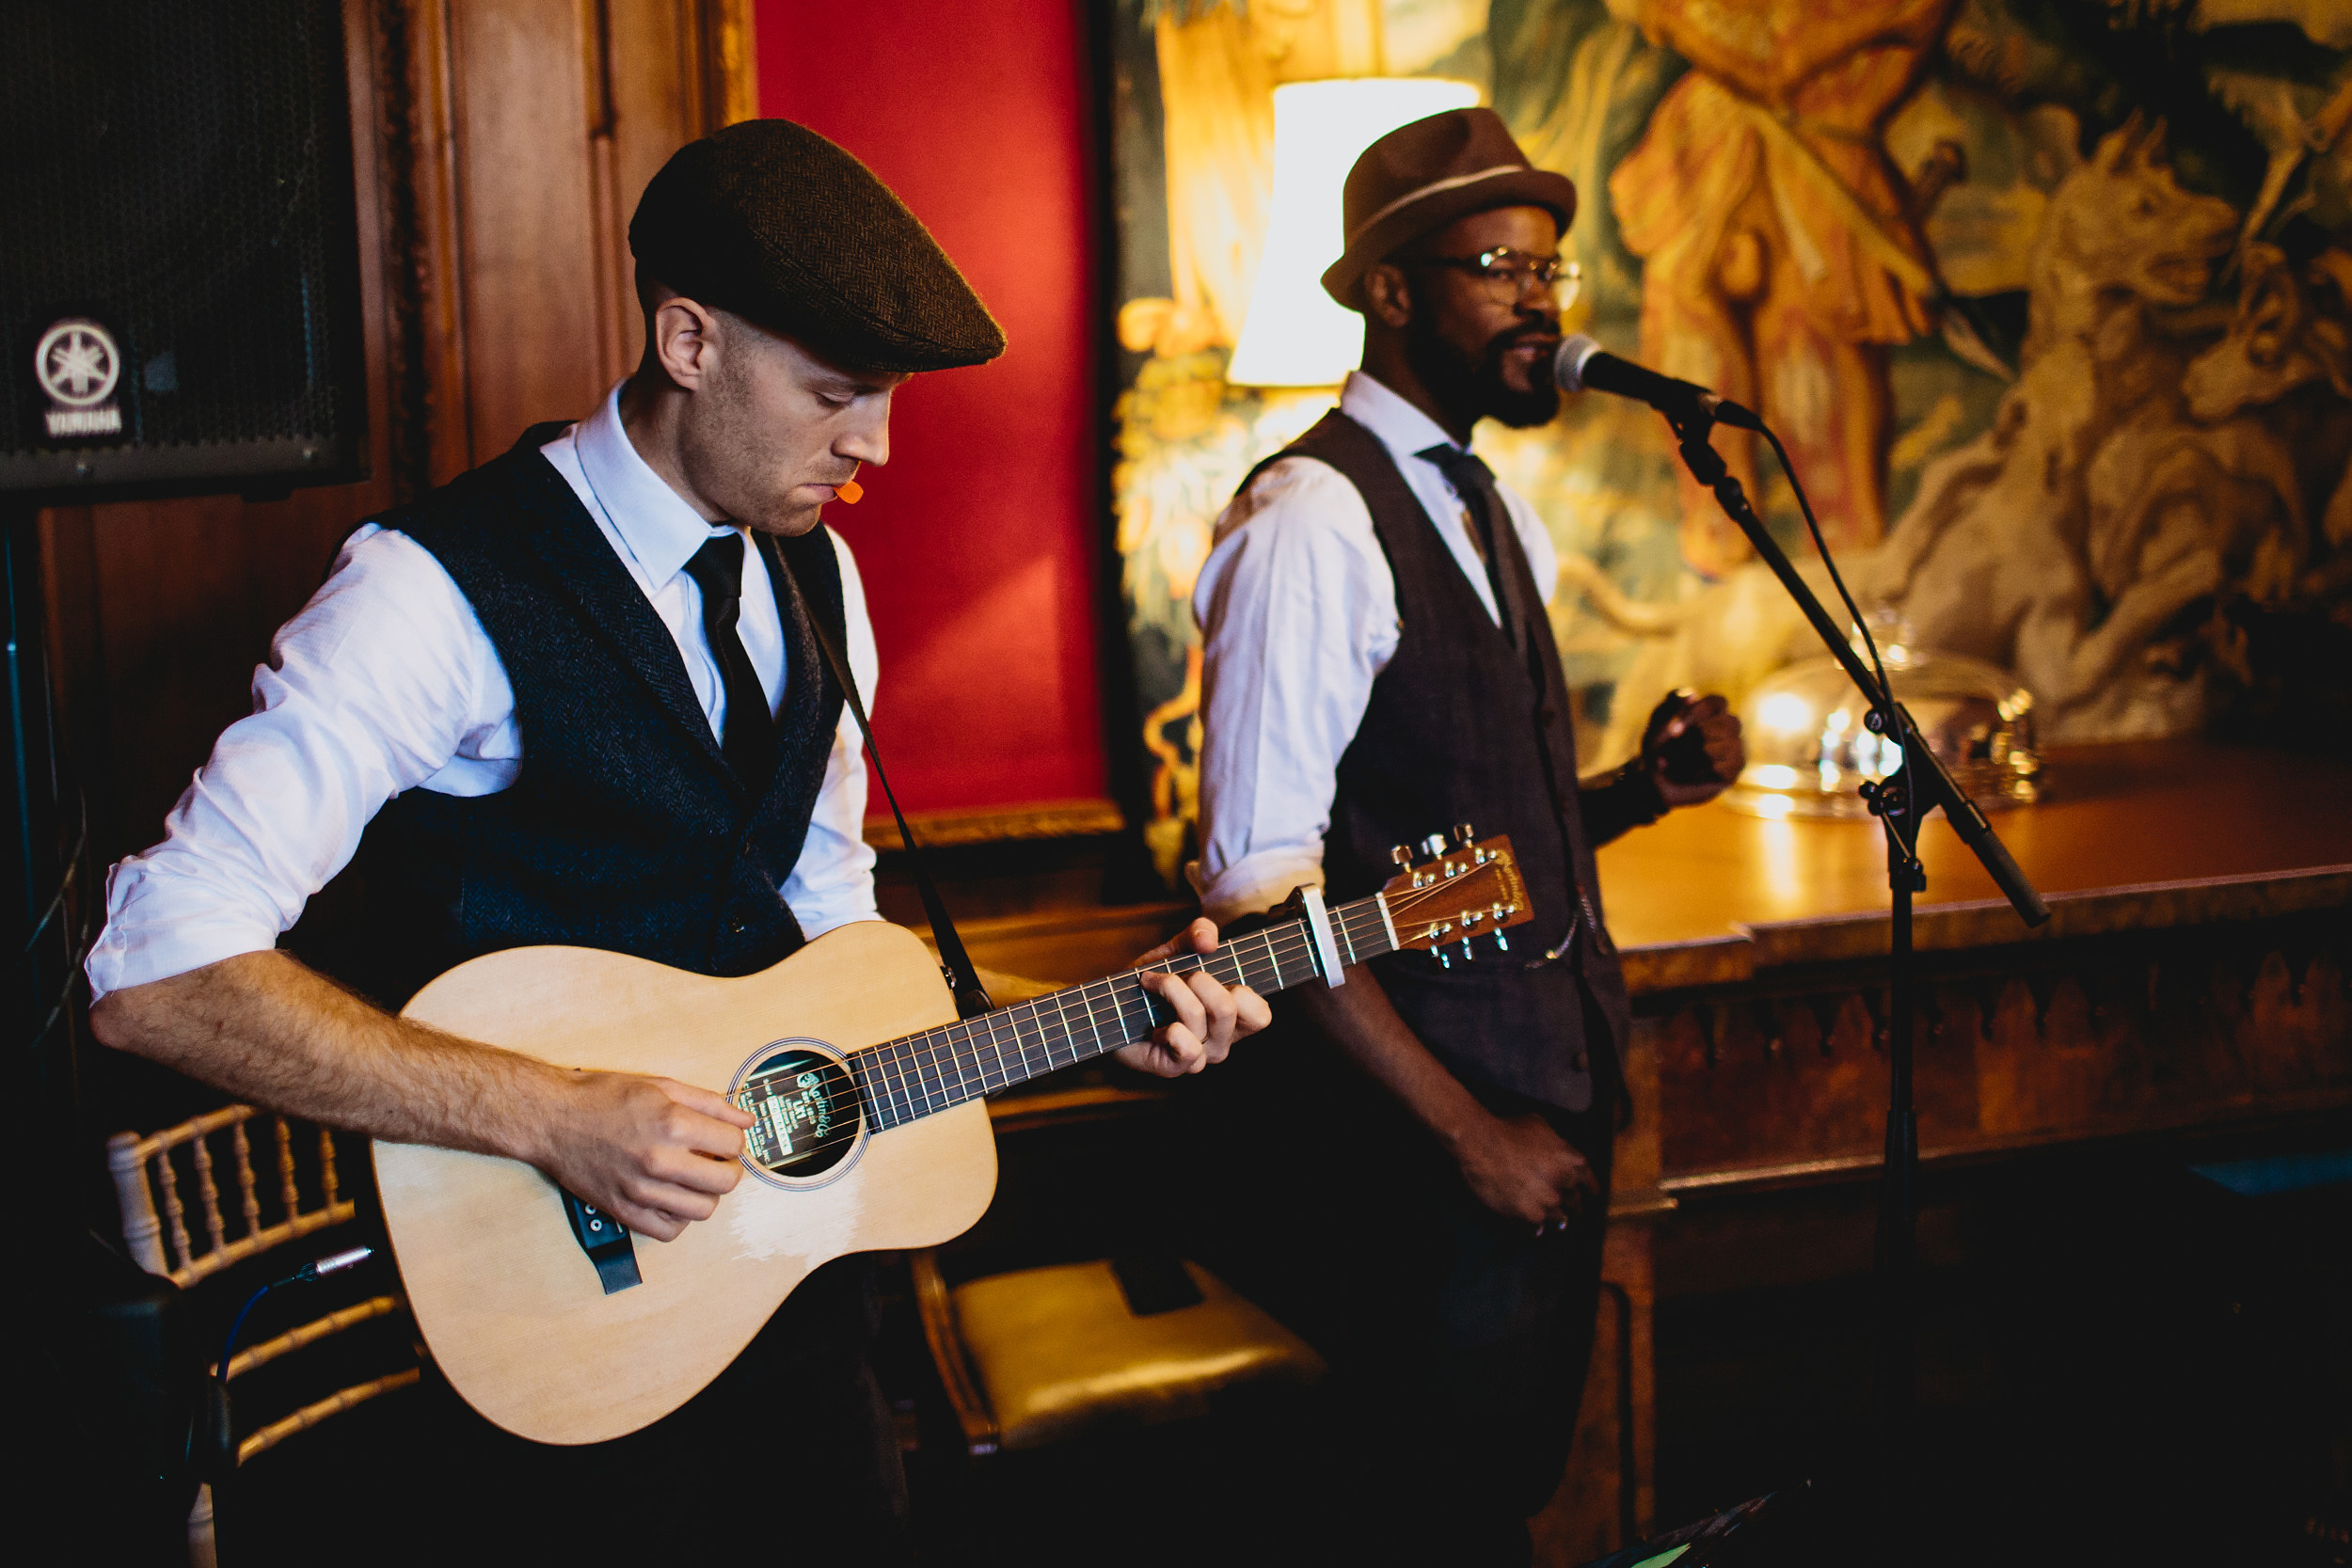 Music duo perform at a wedding ceremony in Cheshire